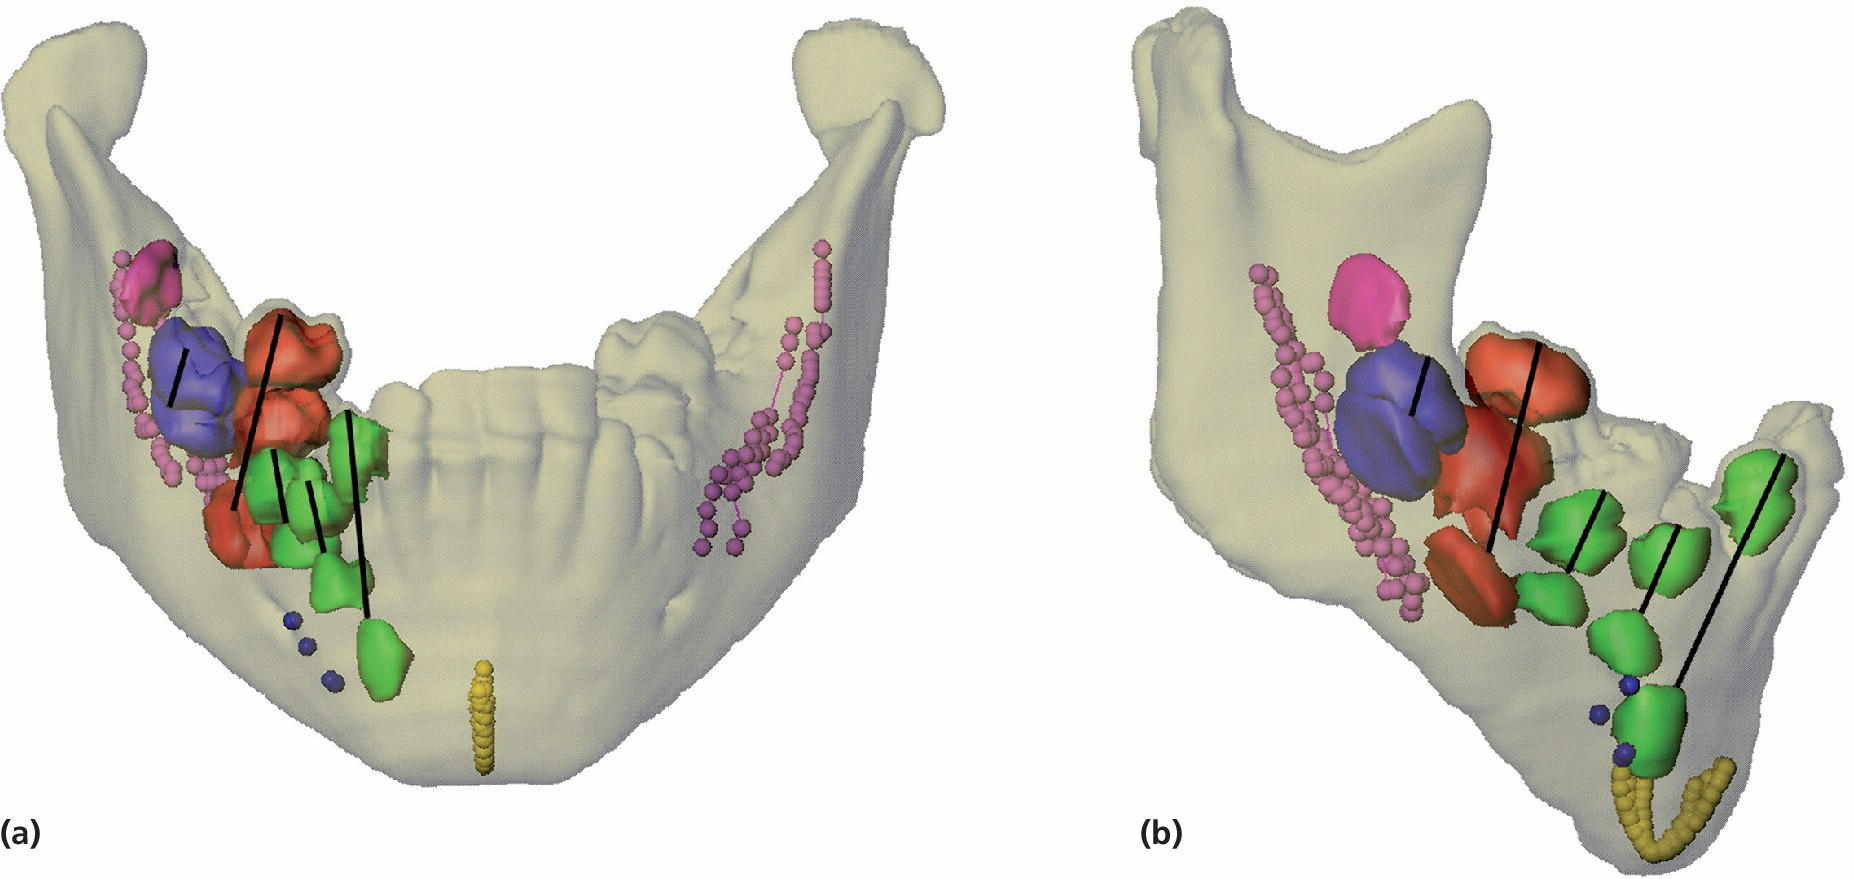 Frontal (a) and lateral views (b) of the transparent mandible, displaying symphysis menti, mental foramen, mandibular canals, and teeth in discrete colors, with lines indicating the eruption paths.